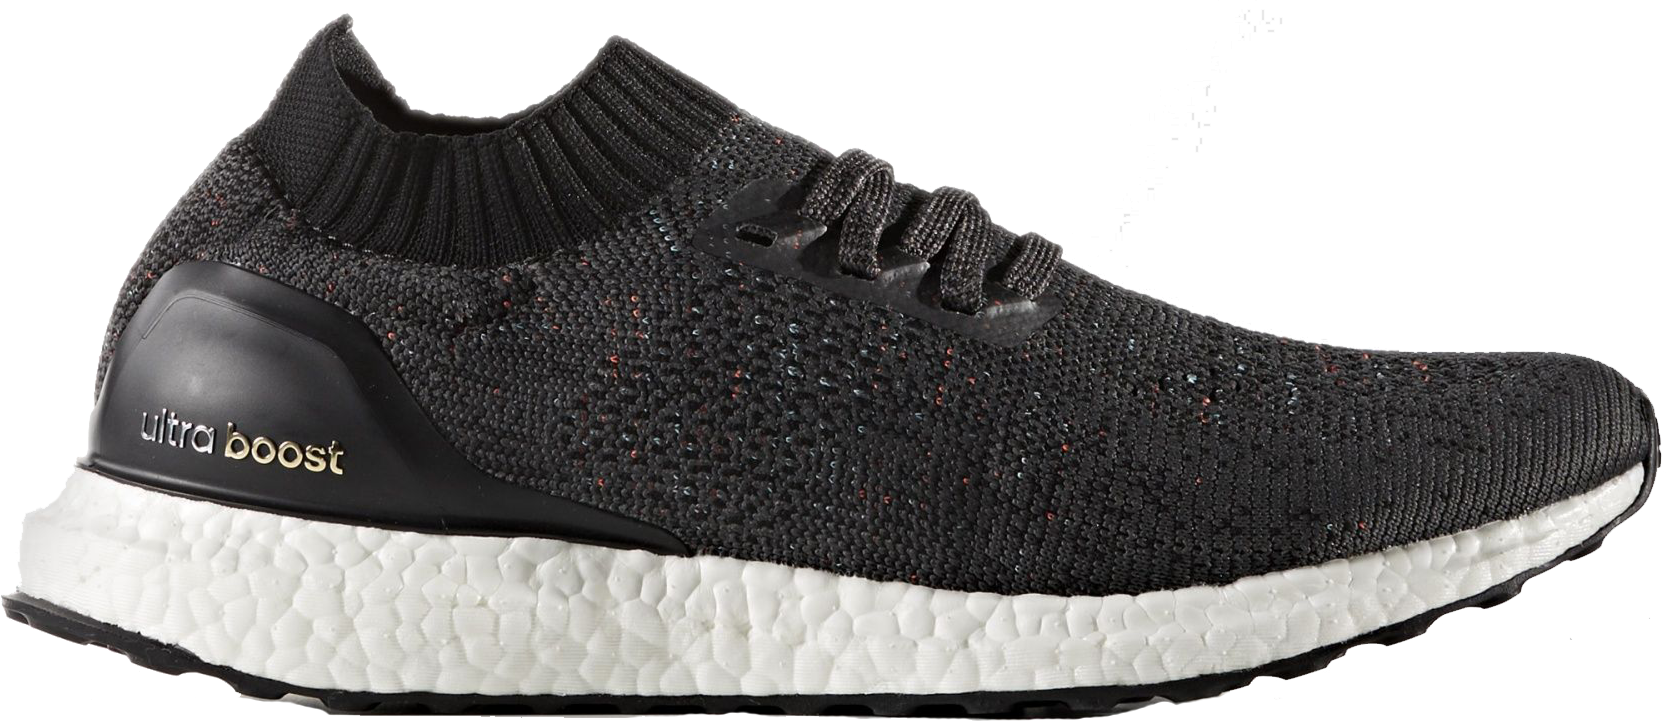 adidas Ultra Boost Uncaged Solid Grey Multi-Color